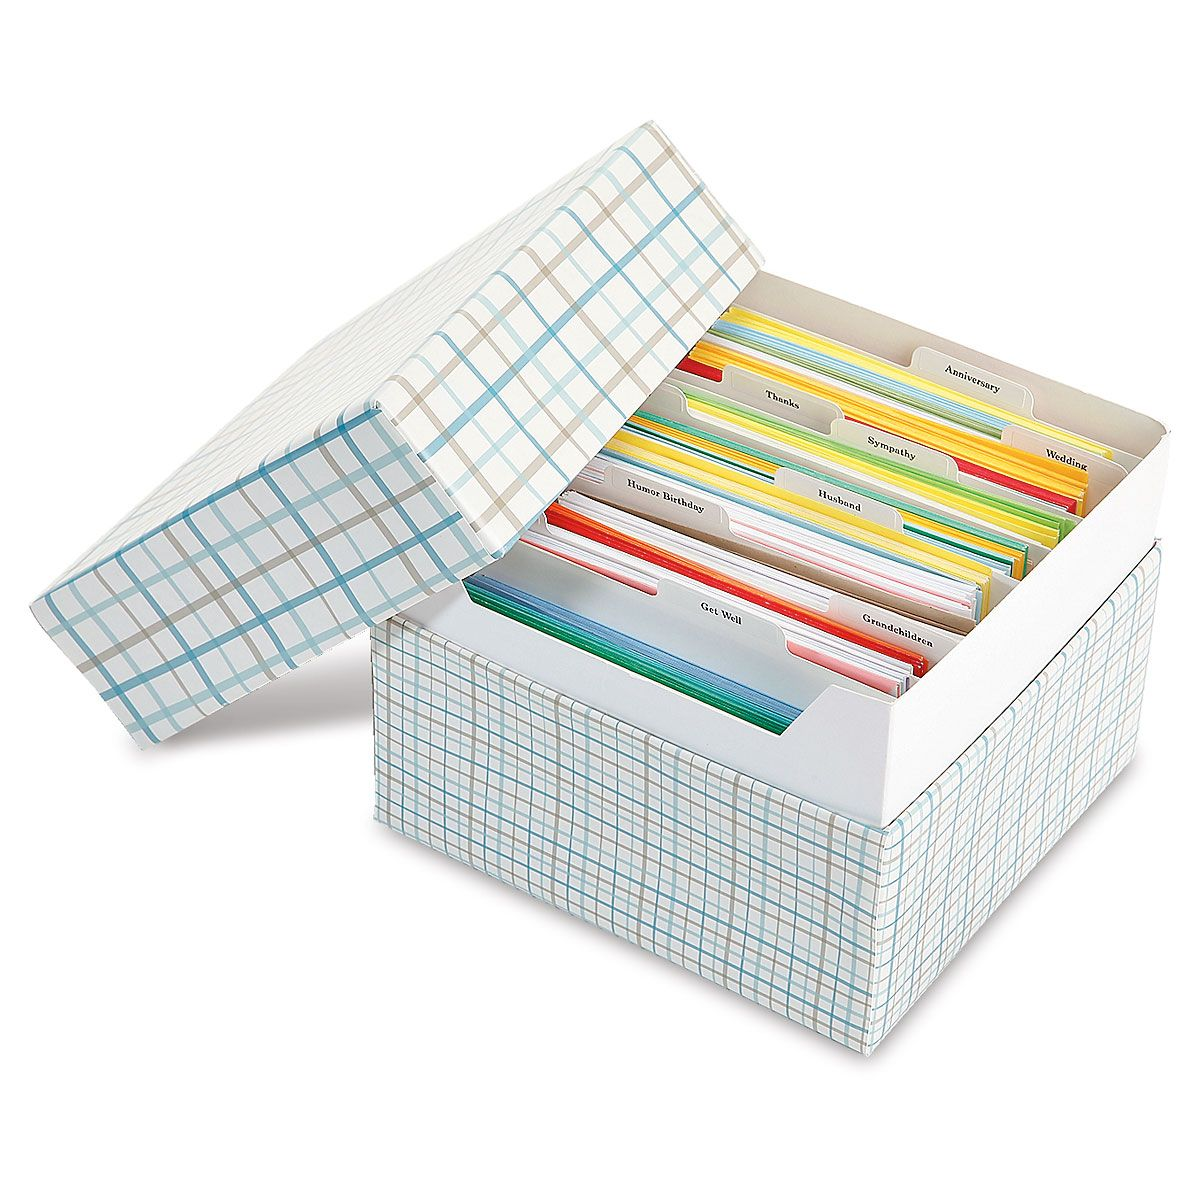 Stripes Greeting Card Organizer Box and Labels